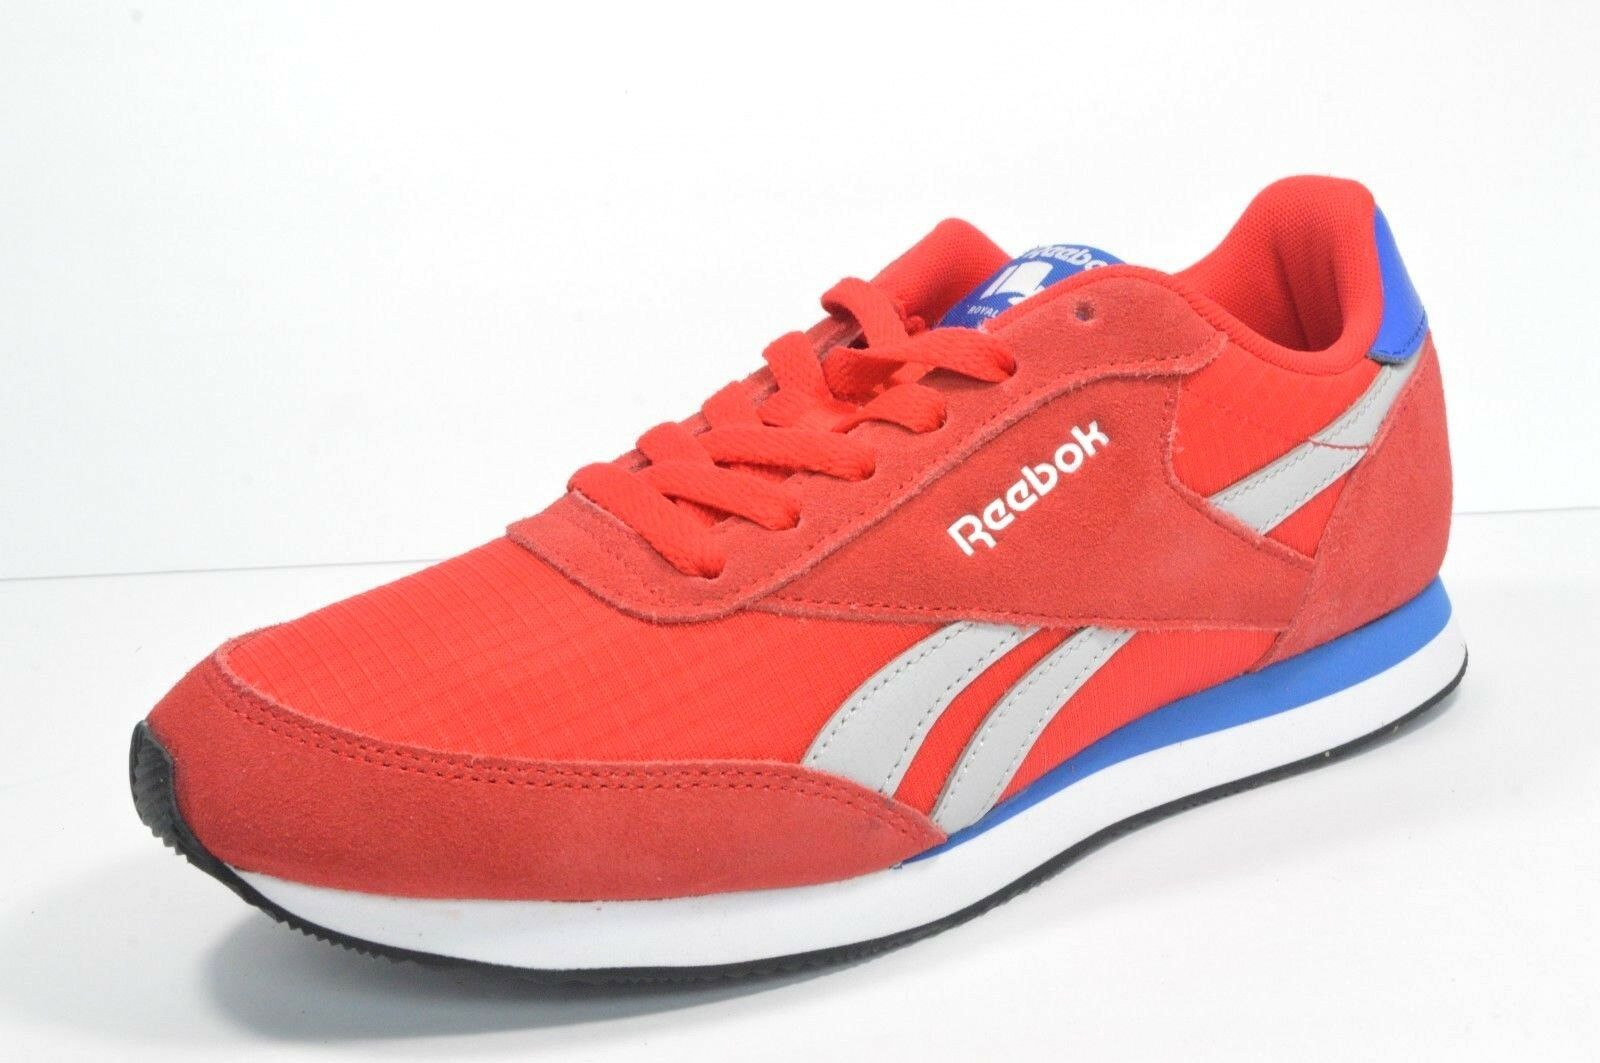 REEBOK Classic Retro BD3281 ROYAL CL JOGGER 2 Men's shoes Red bluee Size 8 New